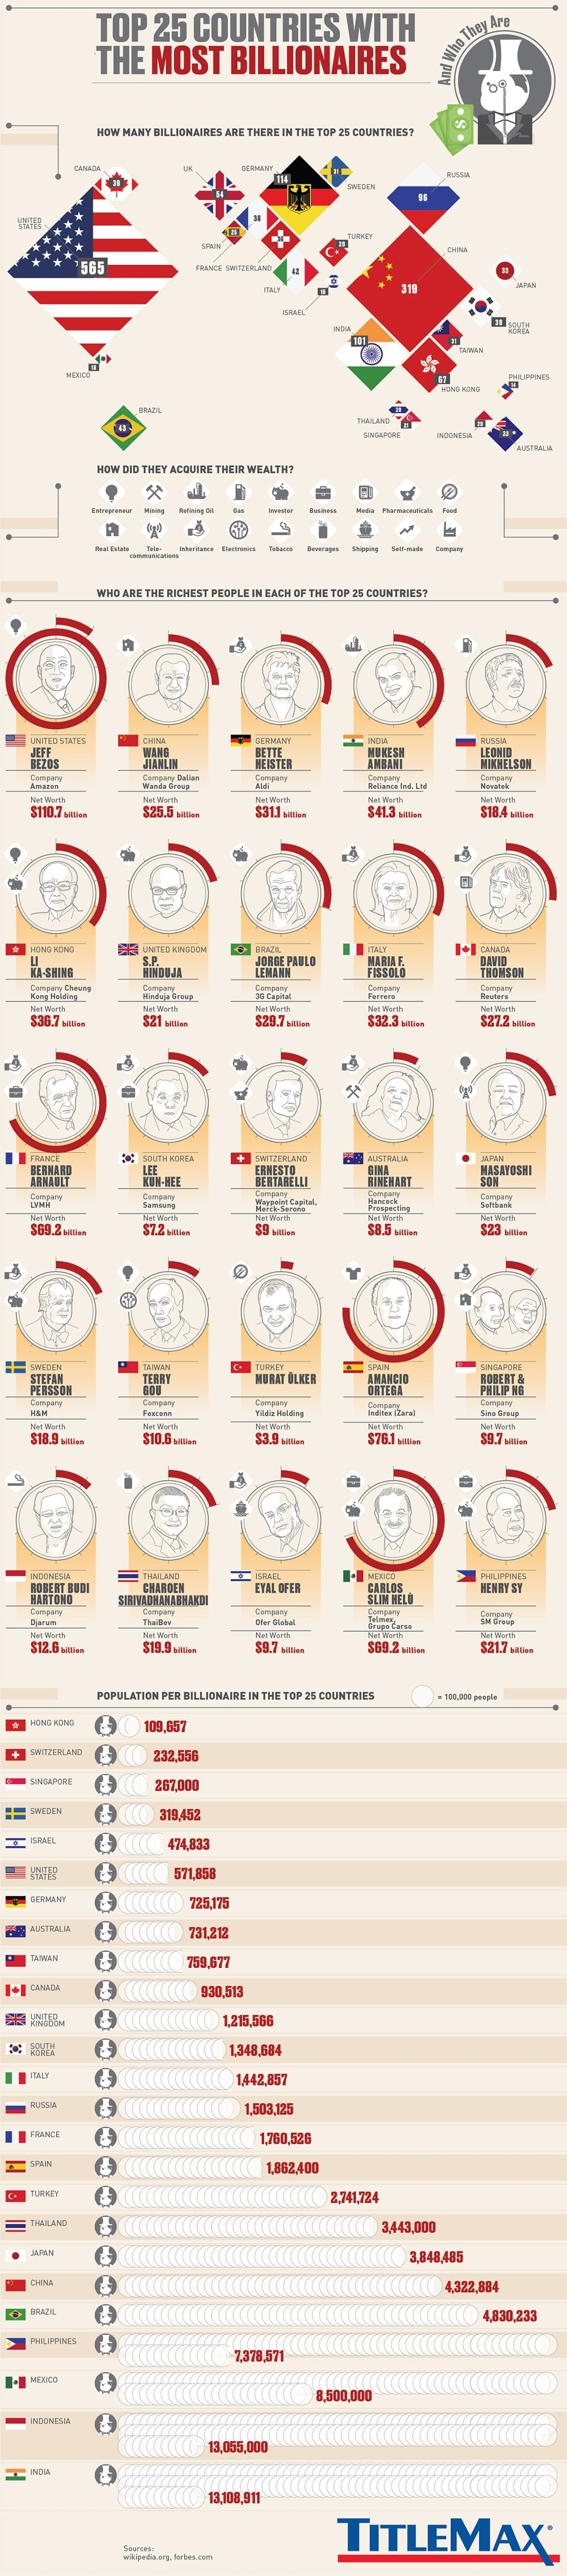 25 Countries With The Most Billionaires